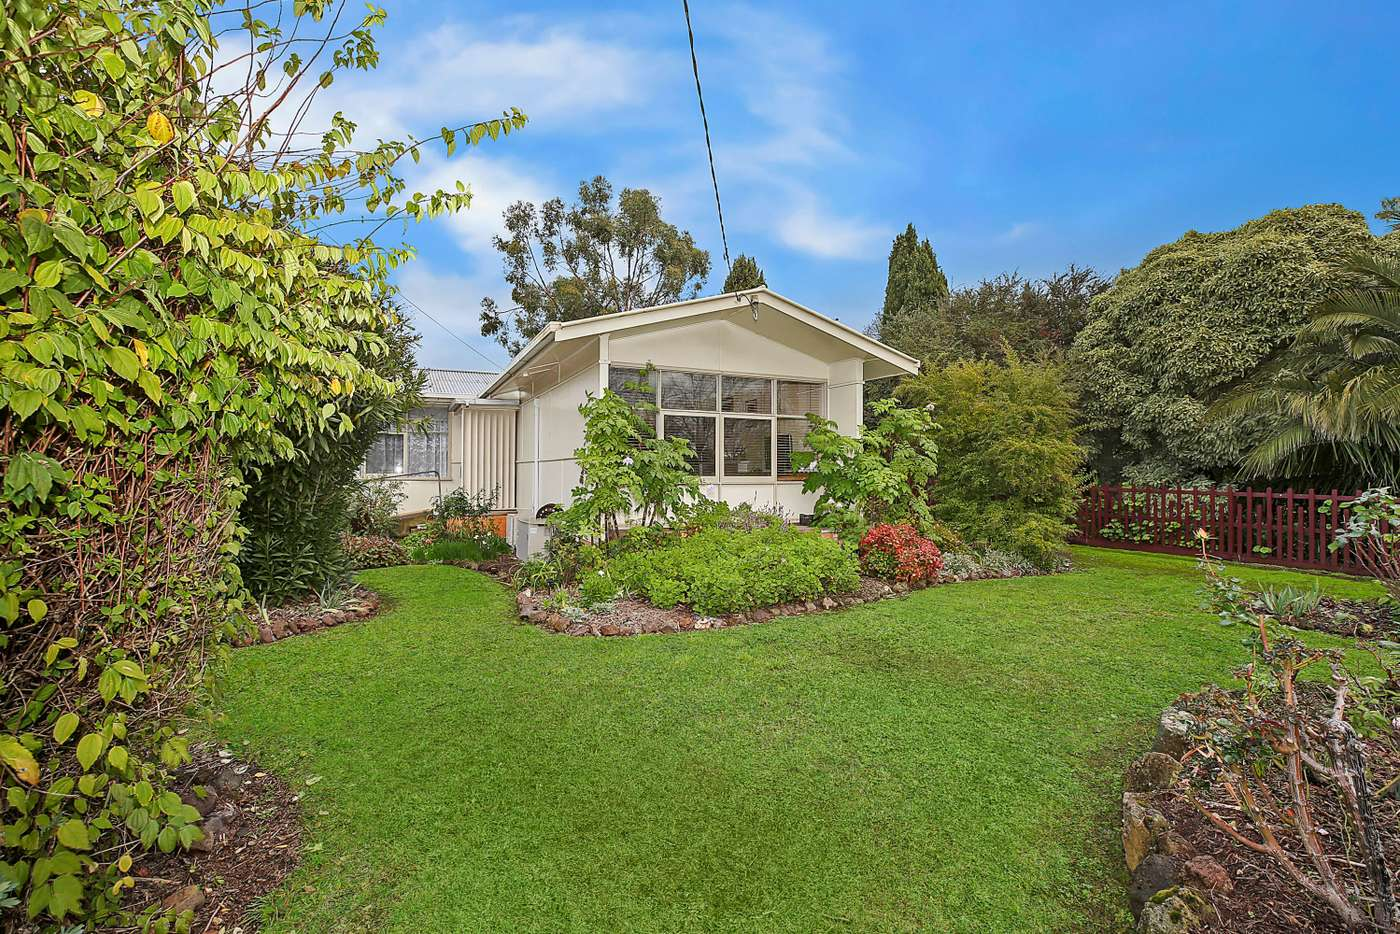 Main view of Homely house listing, 27 Manifold Street, Camperdown VIC 3260